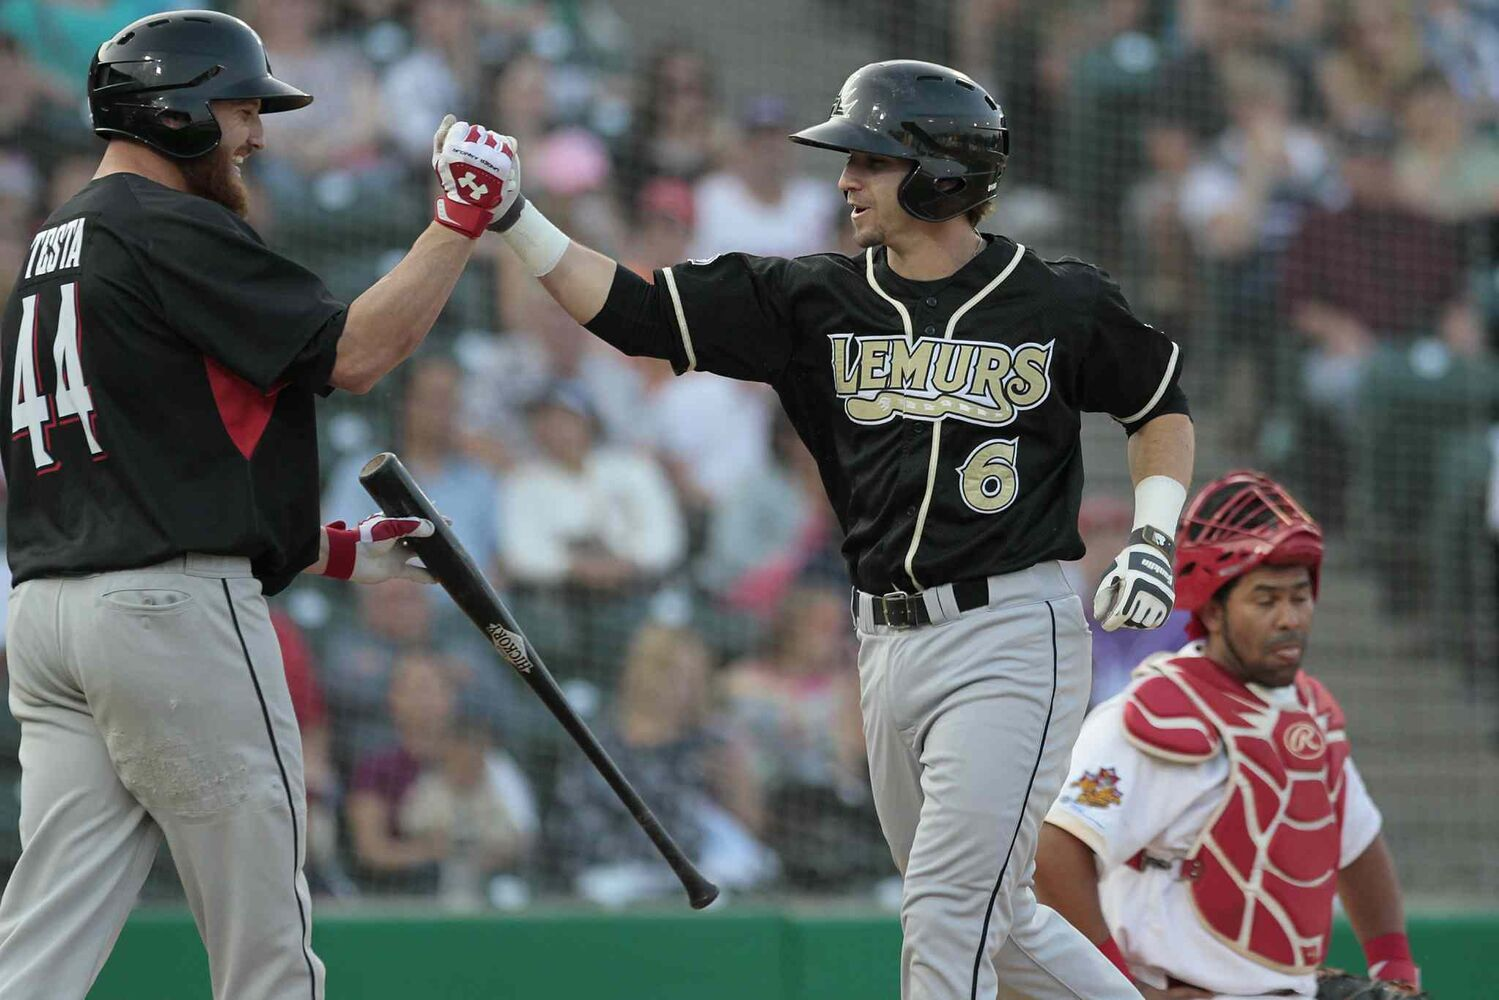 Laredo Lemurs' Devin Goodwin hits a homer in the 2014 American Association All-Star game in Winnipeg Tuesday. (John Woods / Winnipeg Free Press)